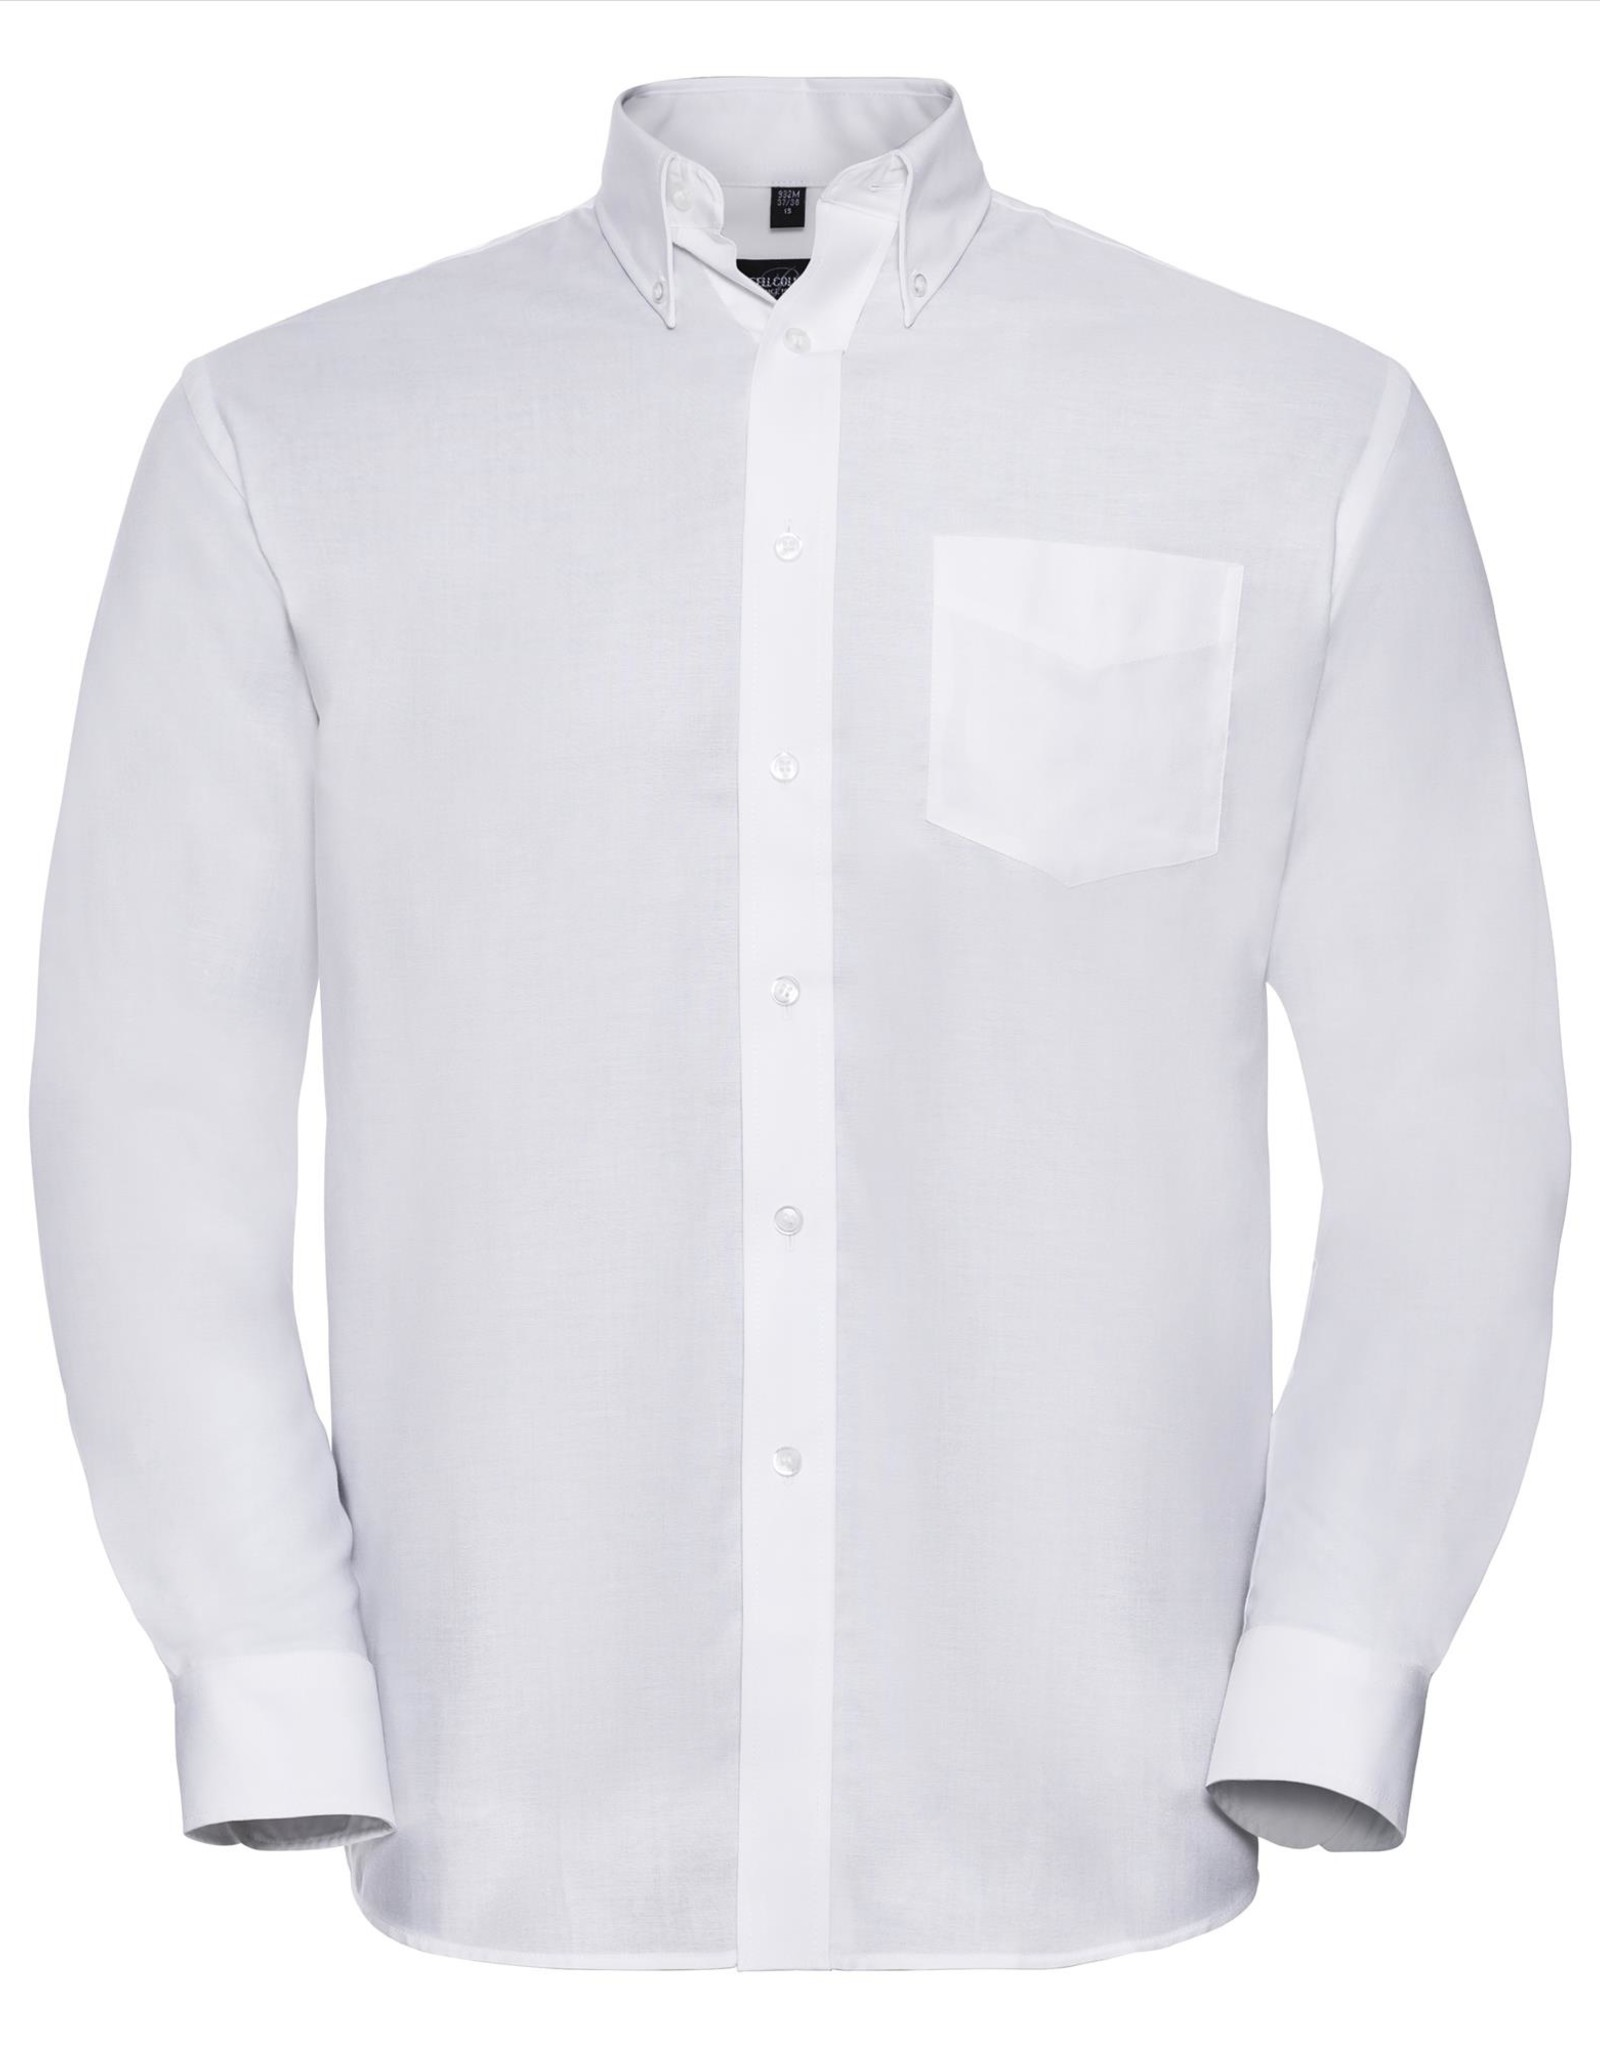 Russell OVERHEMD Classic Oxford lange mouw wit